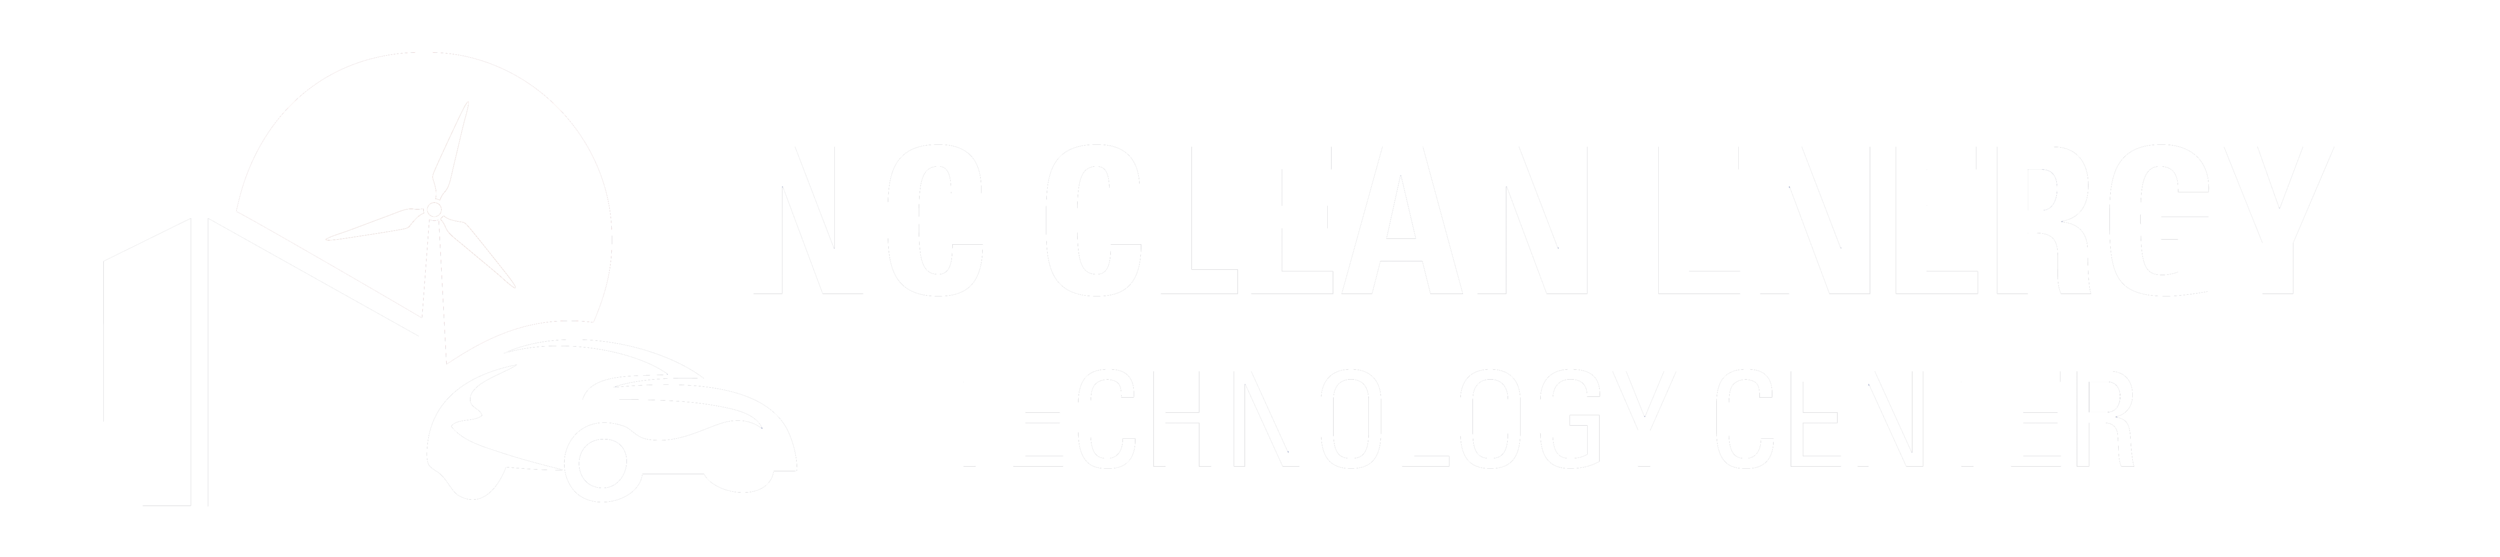 NCCETC Horizontal Logo ALL WHITE.png